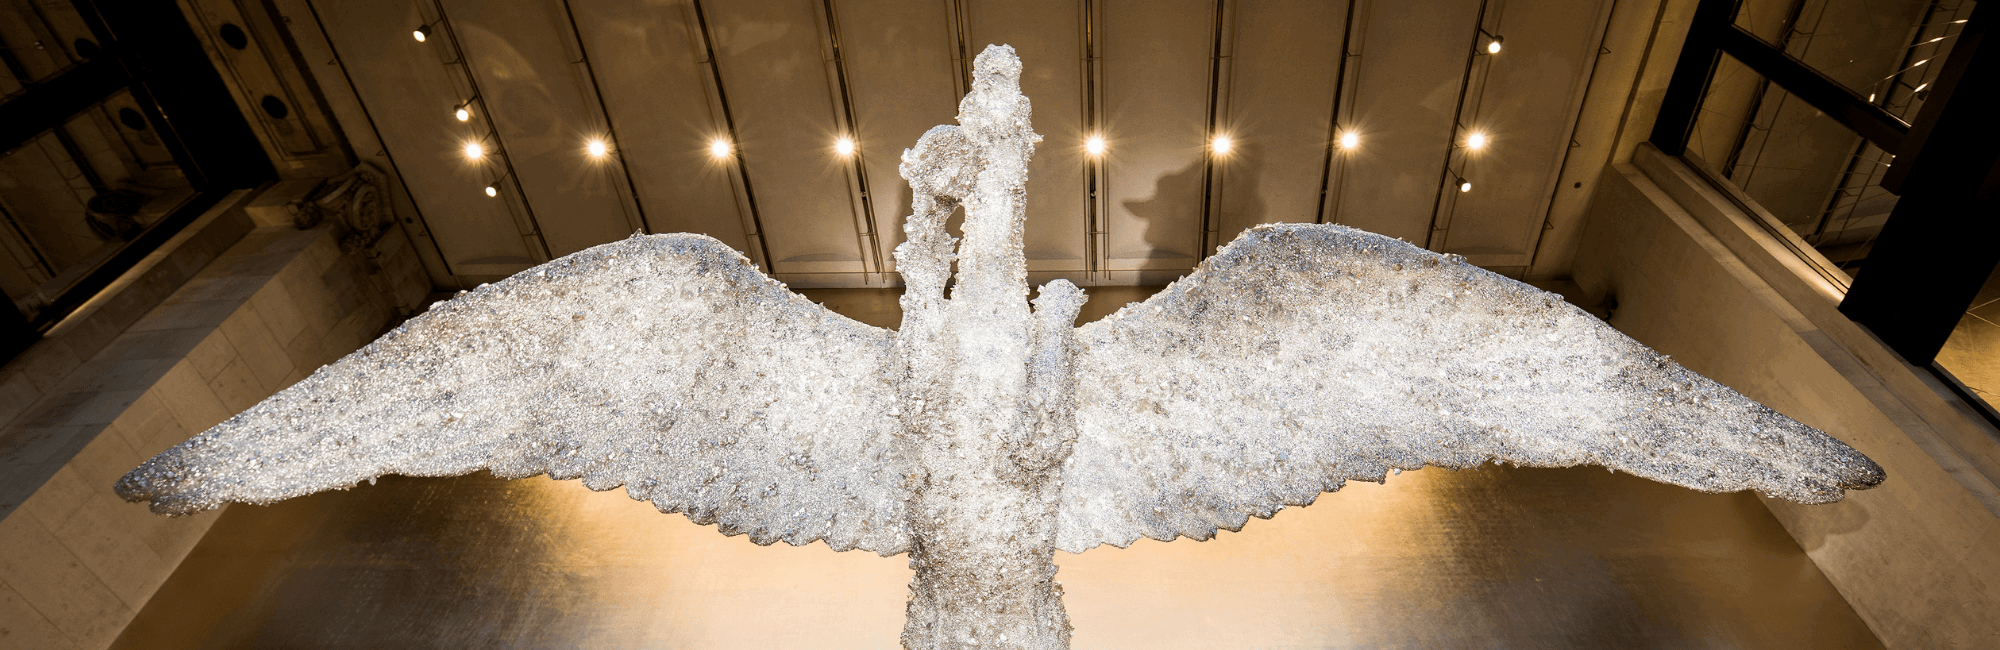 Damien Hirst Pegasus at Brasserie of Light